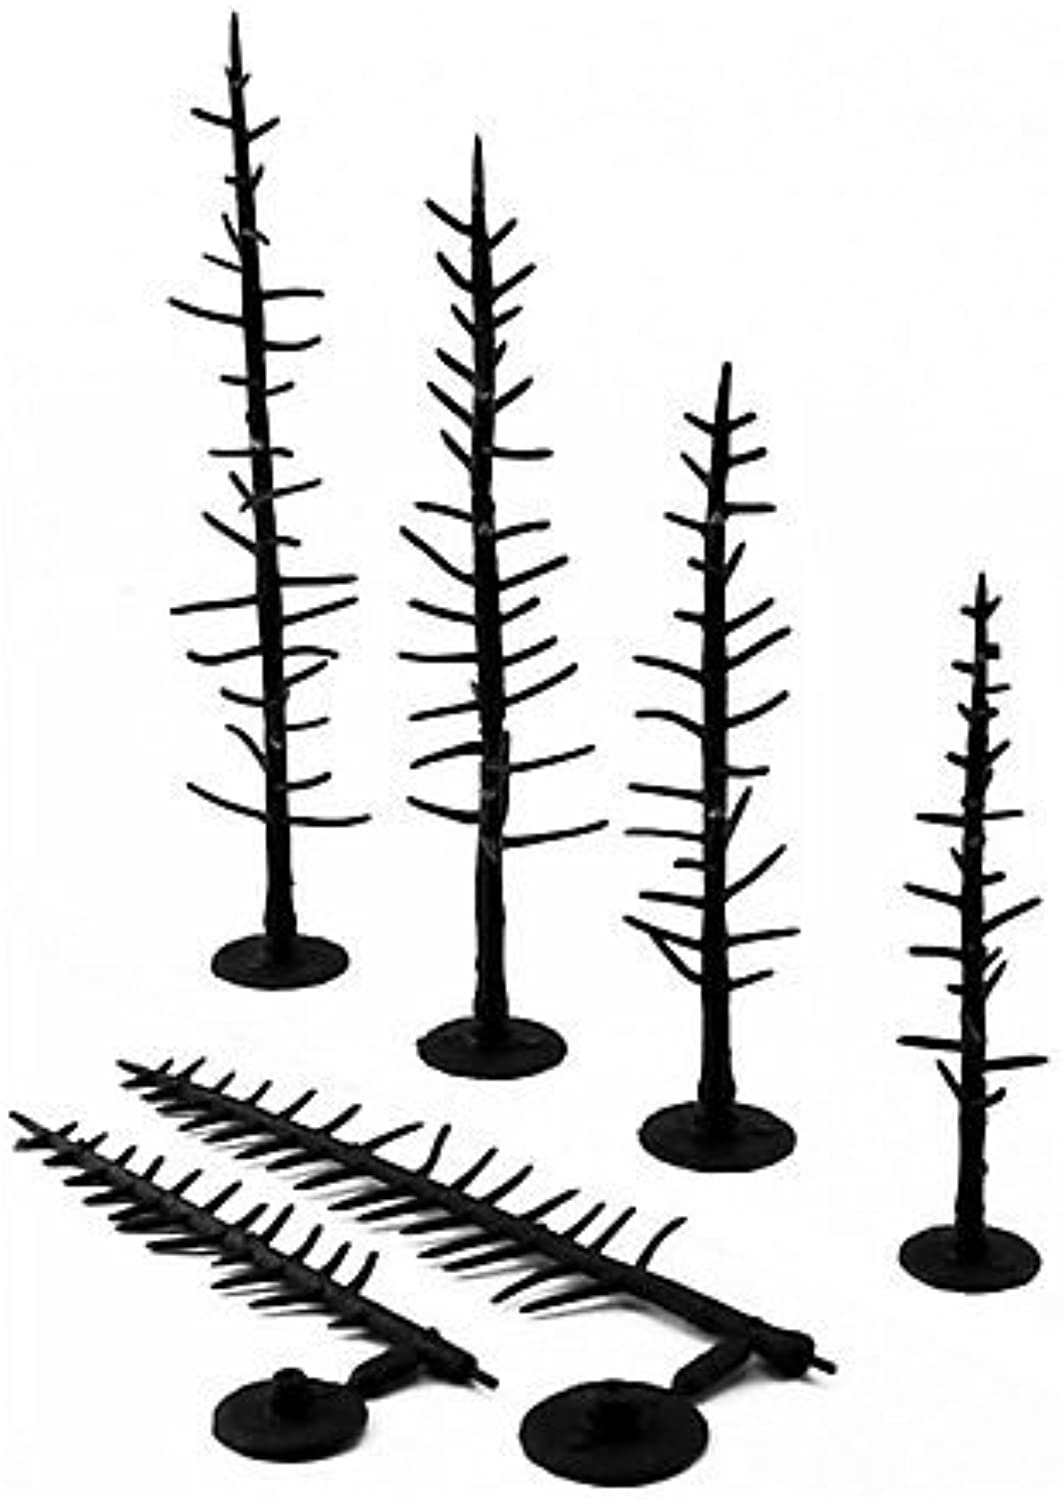 Woodland Scenics TR1125 Pine Tree Armatures (44) by Woodland Scenics